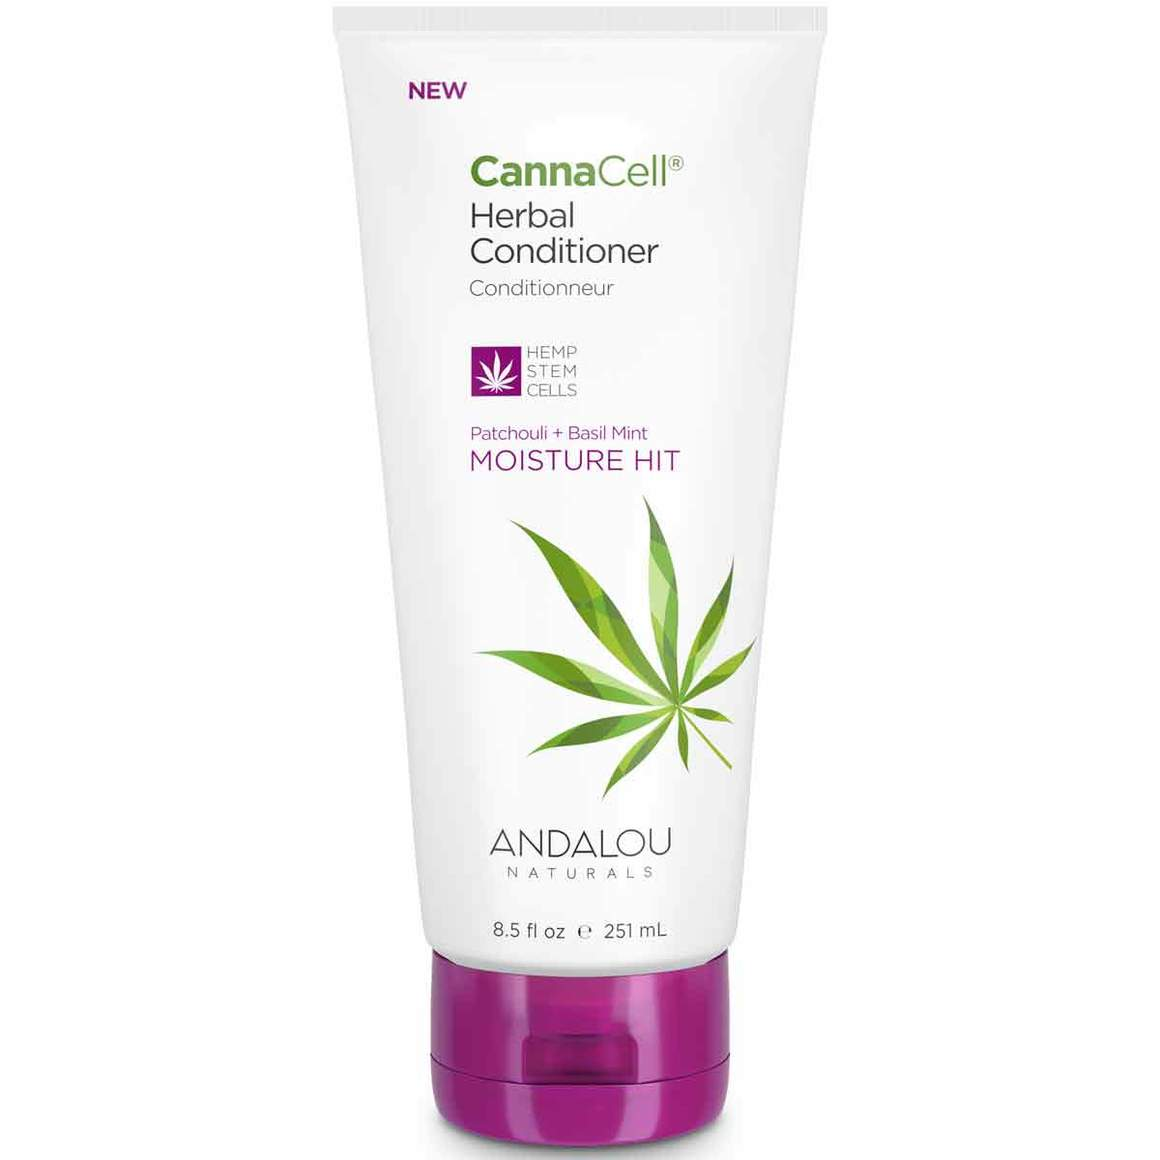 Andalou Naturals CannaCell Conditioner